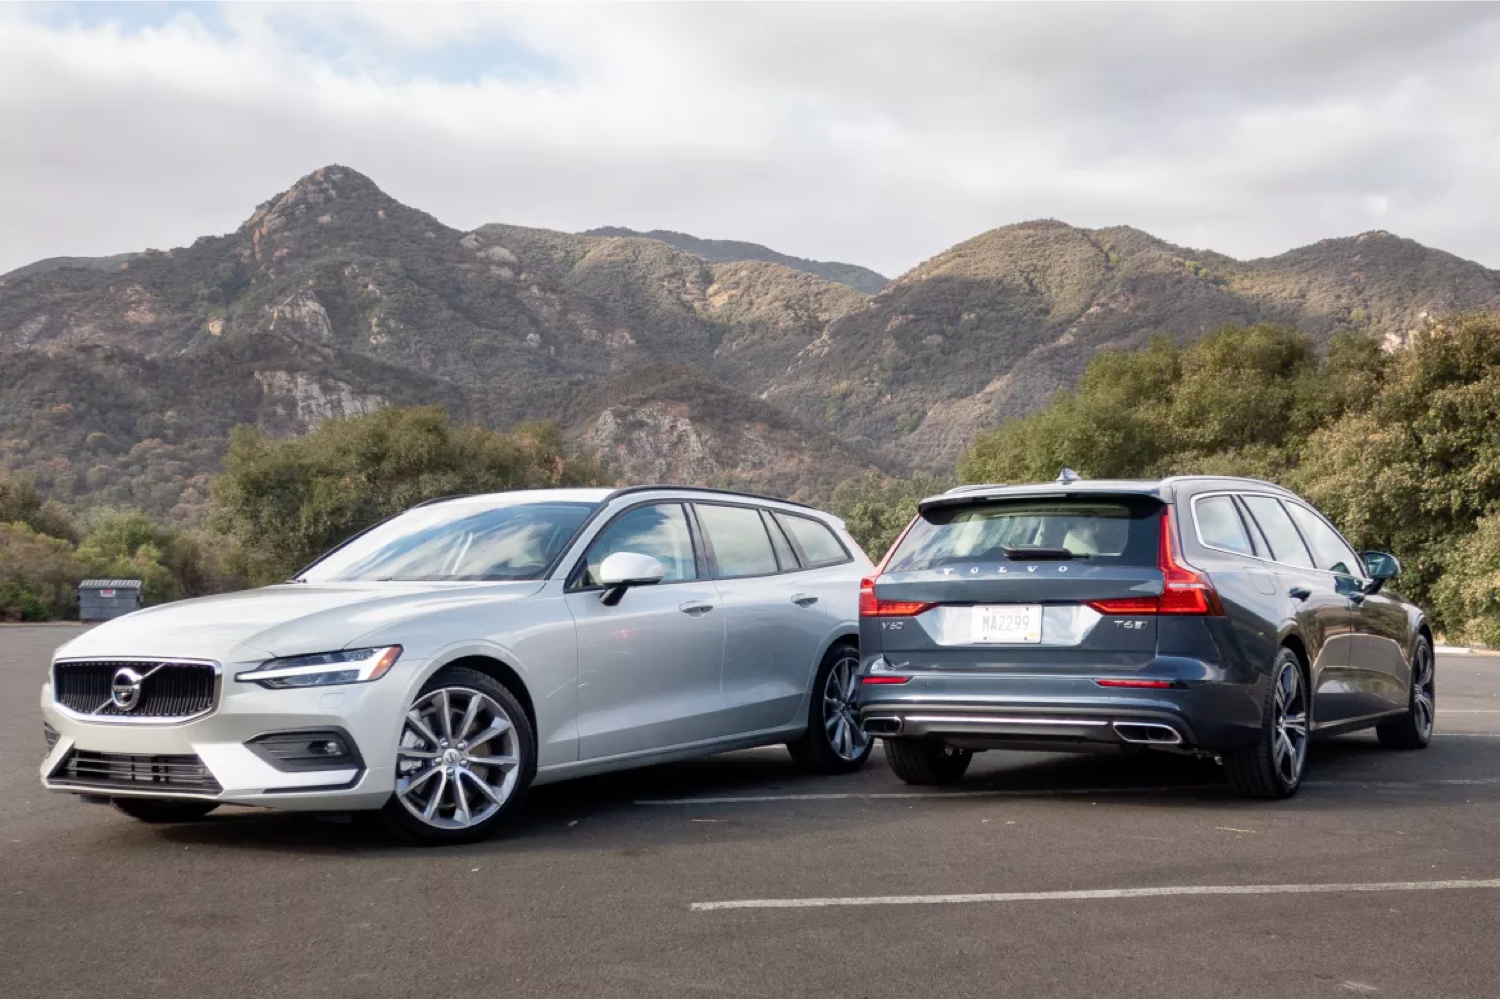 The 2019 Volvo V60: A Station Wagon with Style